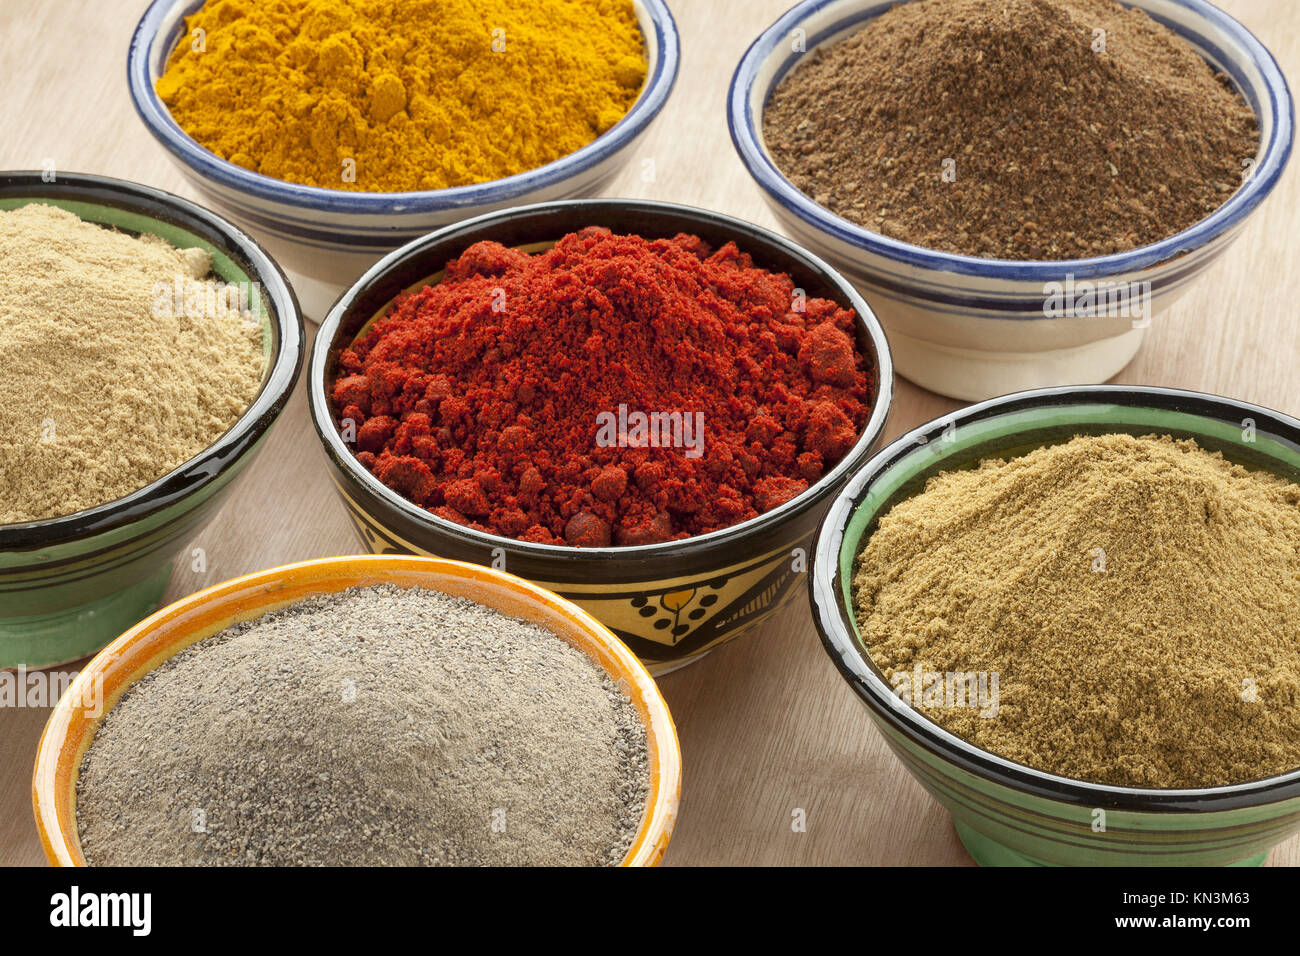 Moroccan bowls stock photos moroccan bowls stock images alamy moroccan bowls with different ground spices stock image reviewsmspy